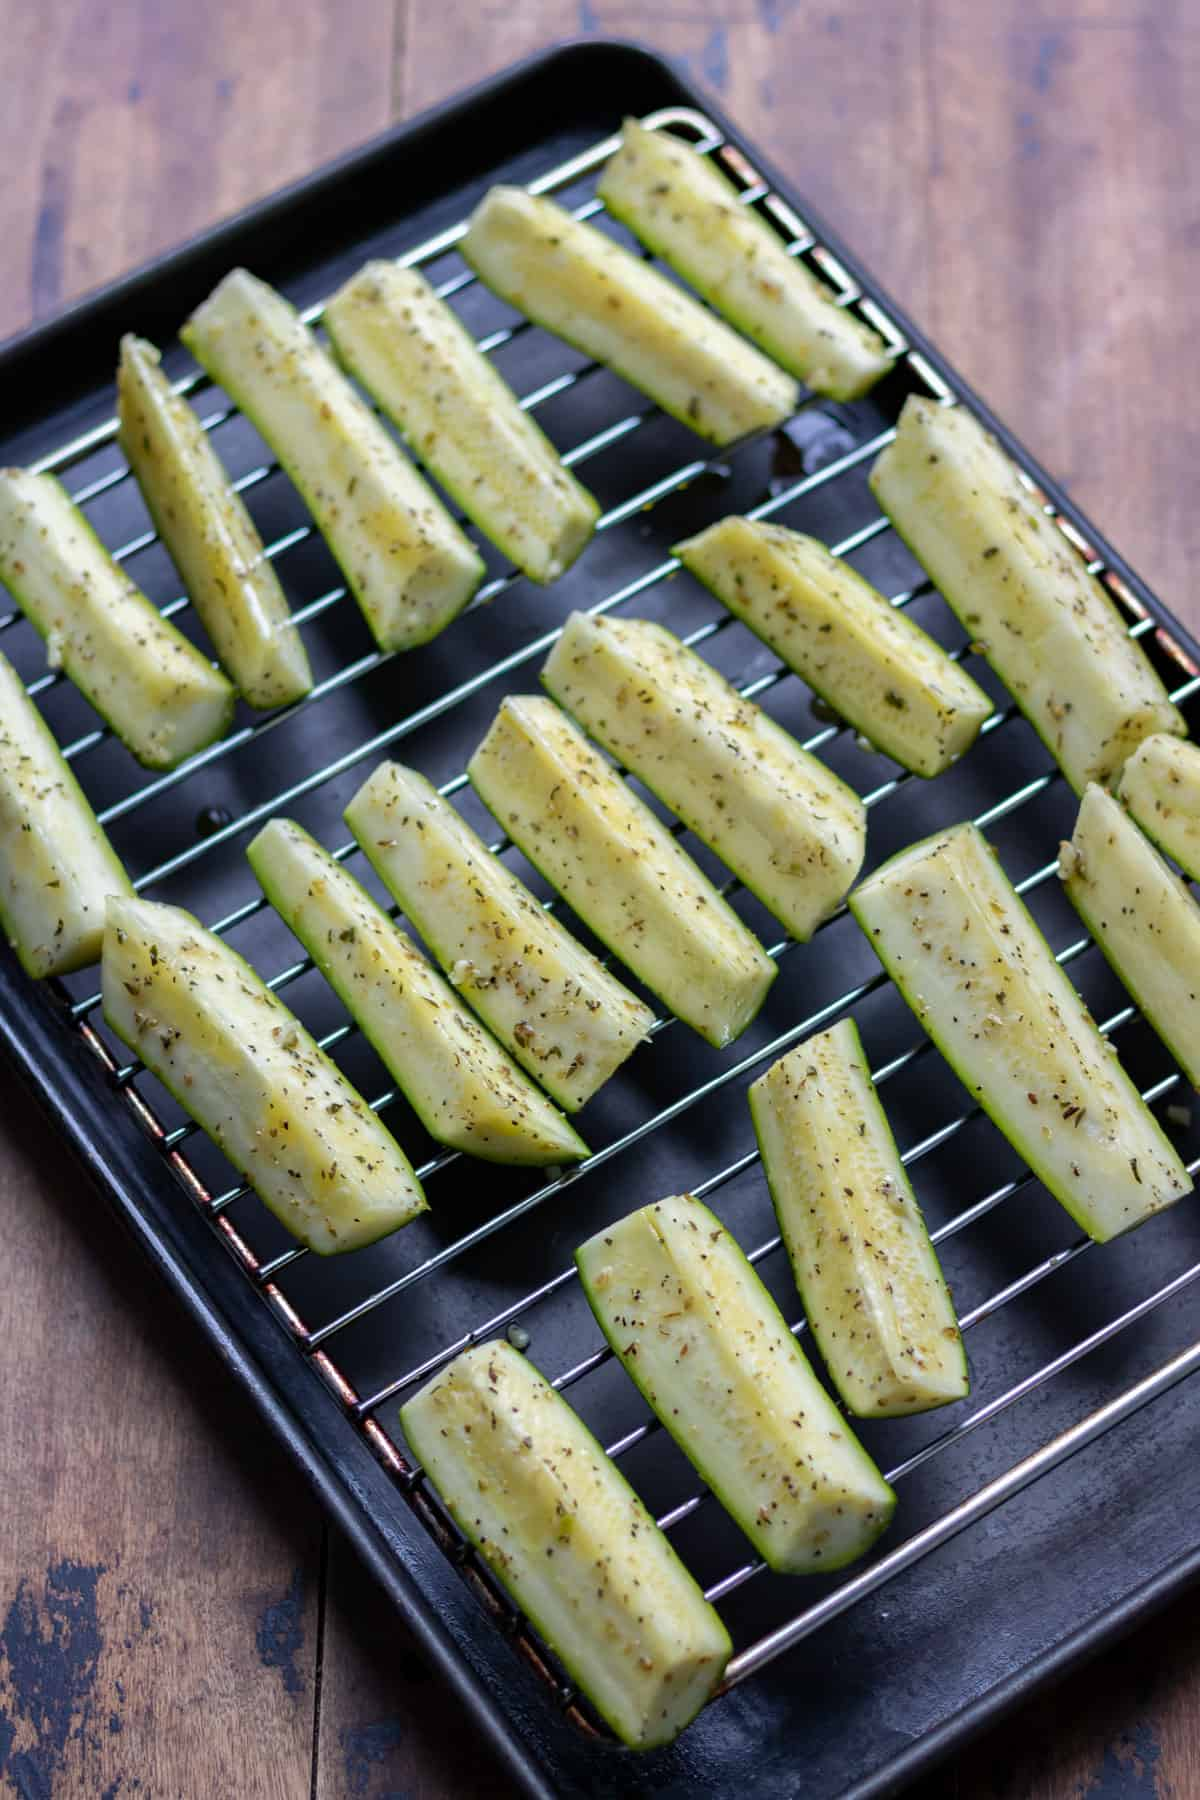 Spears of zucchini on a rack on a tray ready to roast.